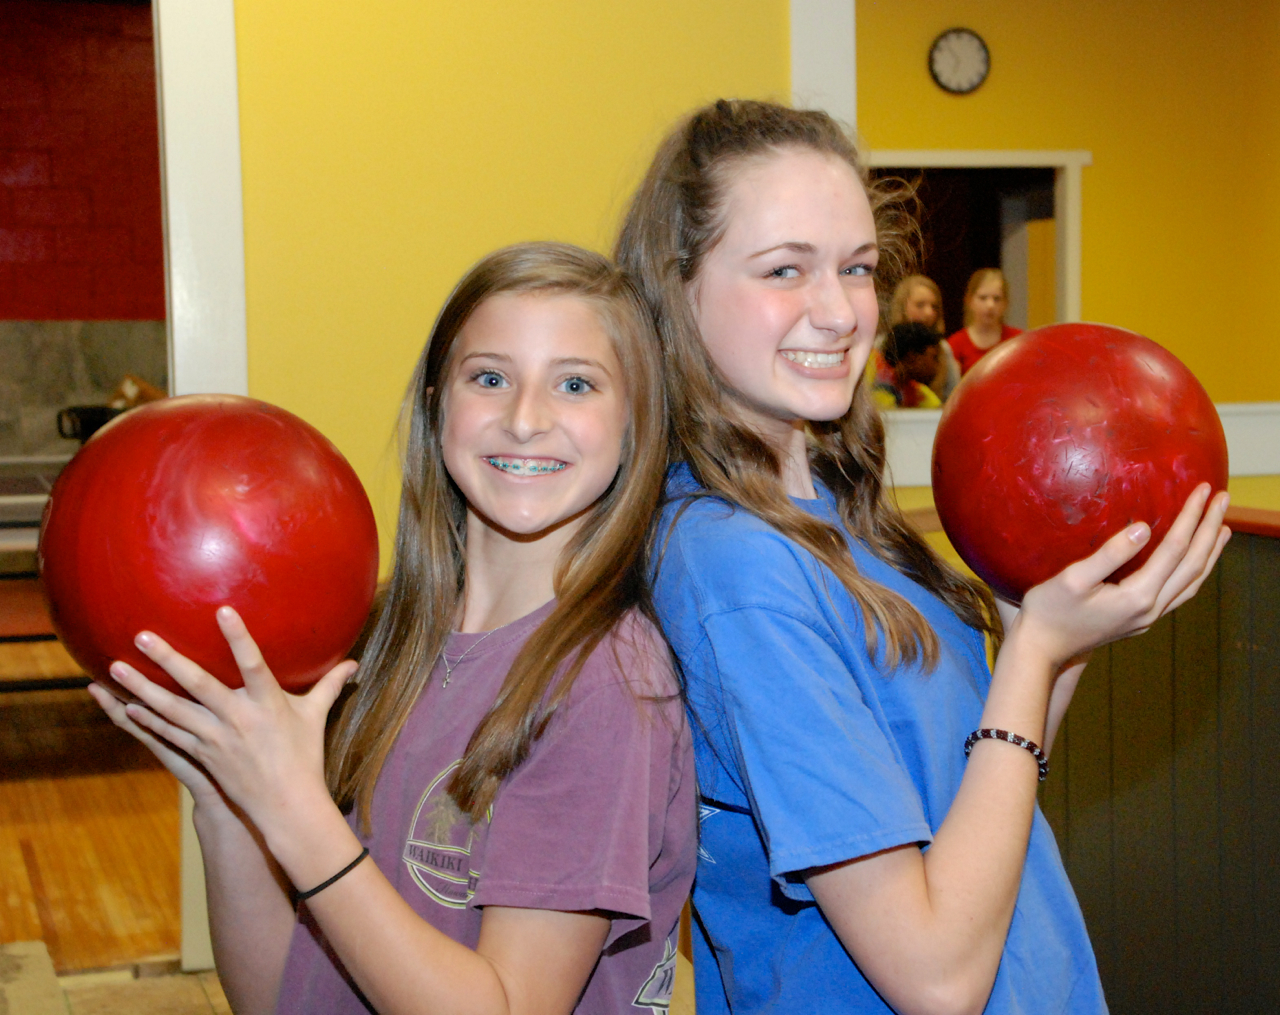 Teenage girls holding red bowling balls Indian Lanes Center Party Zone Clinton MS